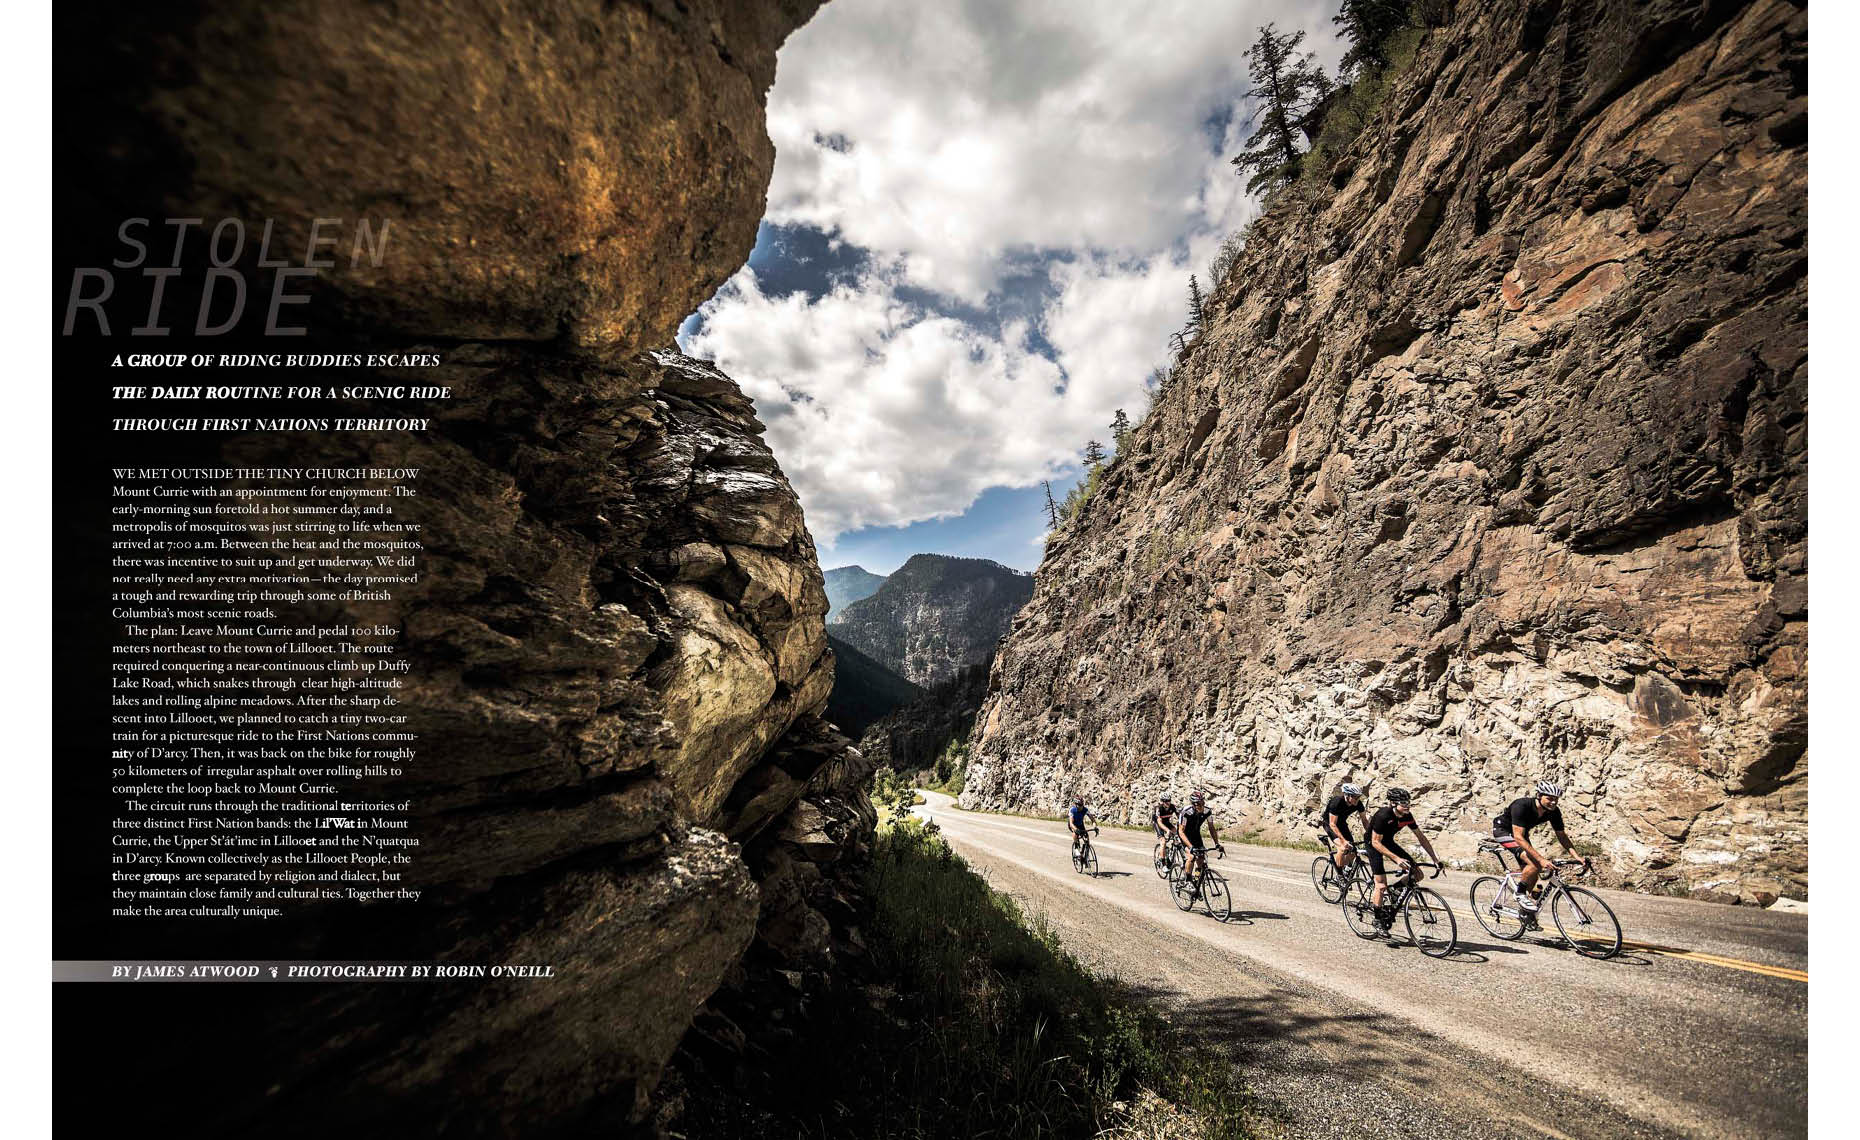 Road bike photography article from near Whistler, Canada